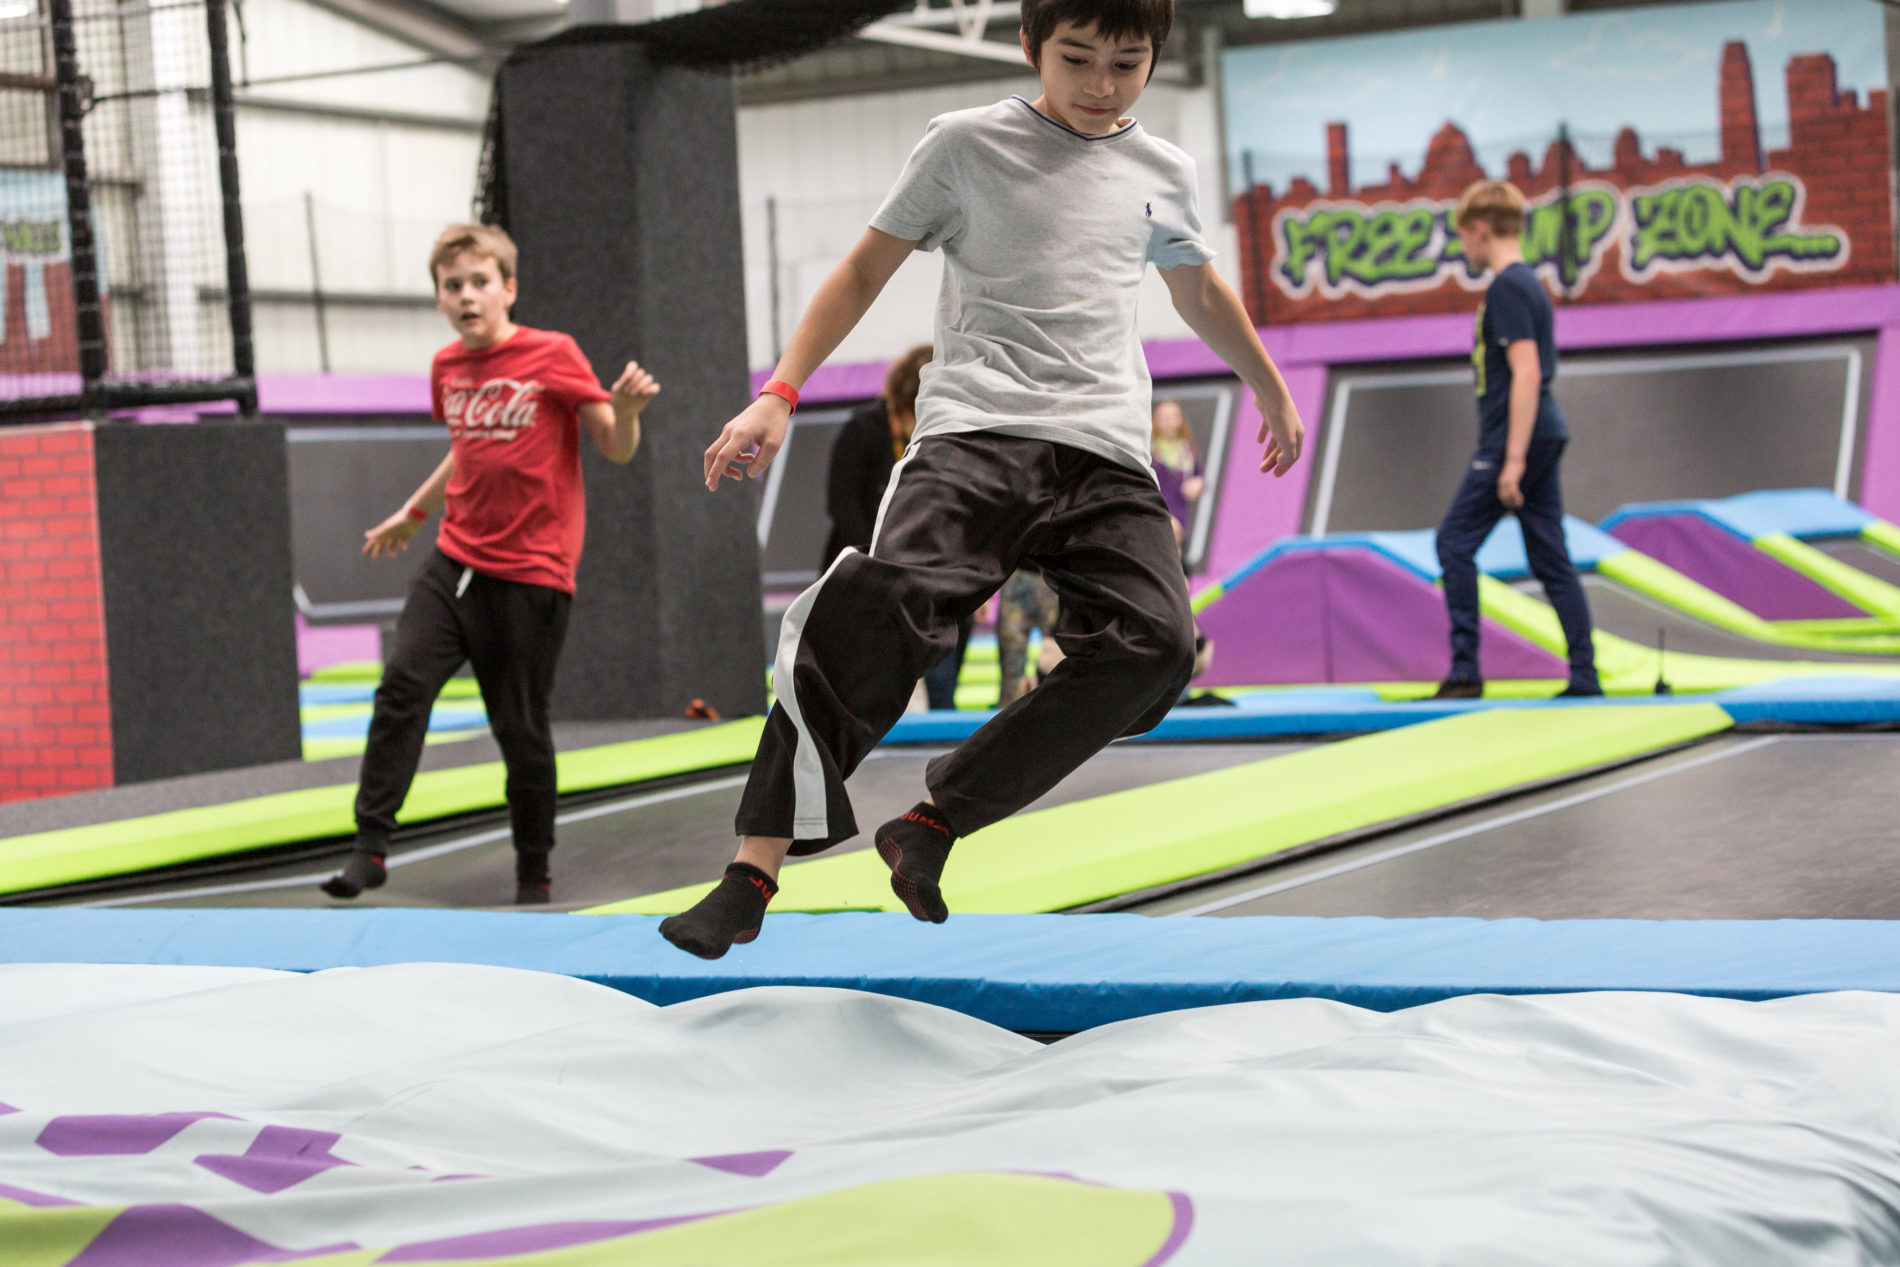 Walk the wall at Sky High Trampoline Park